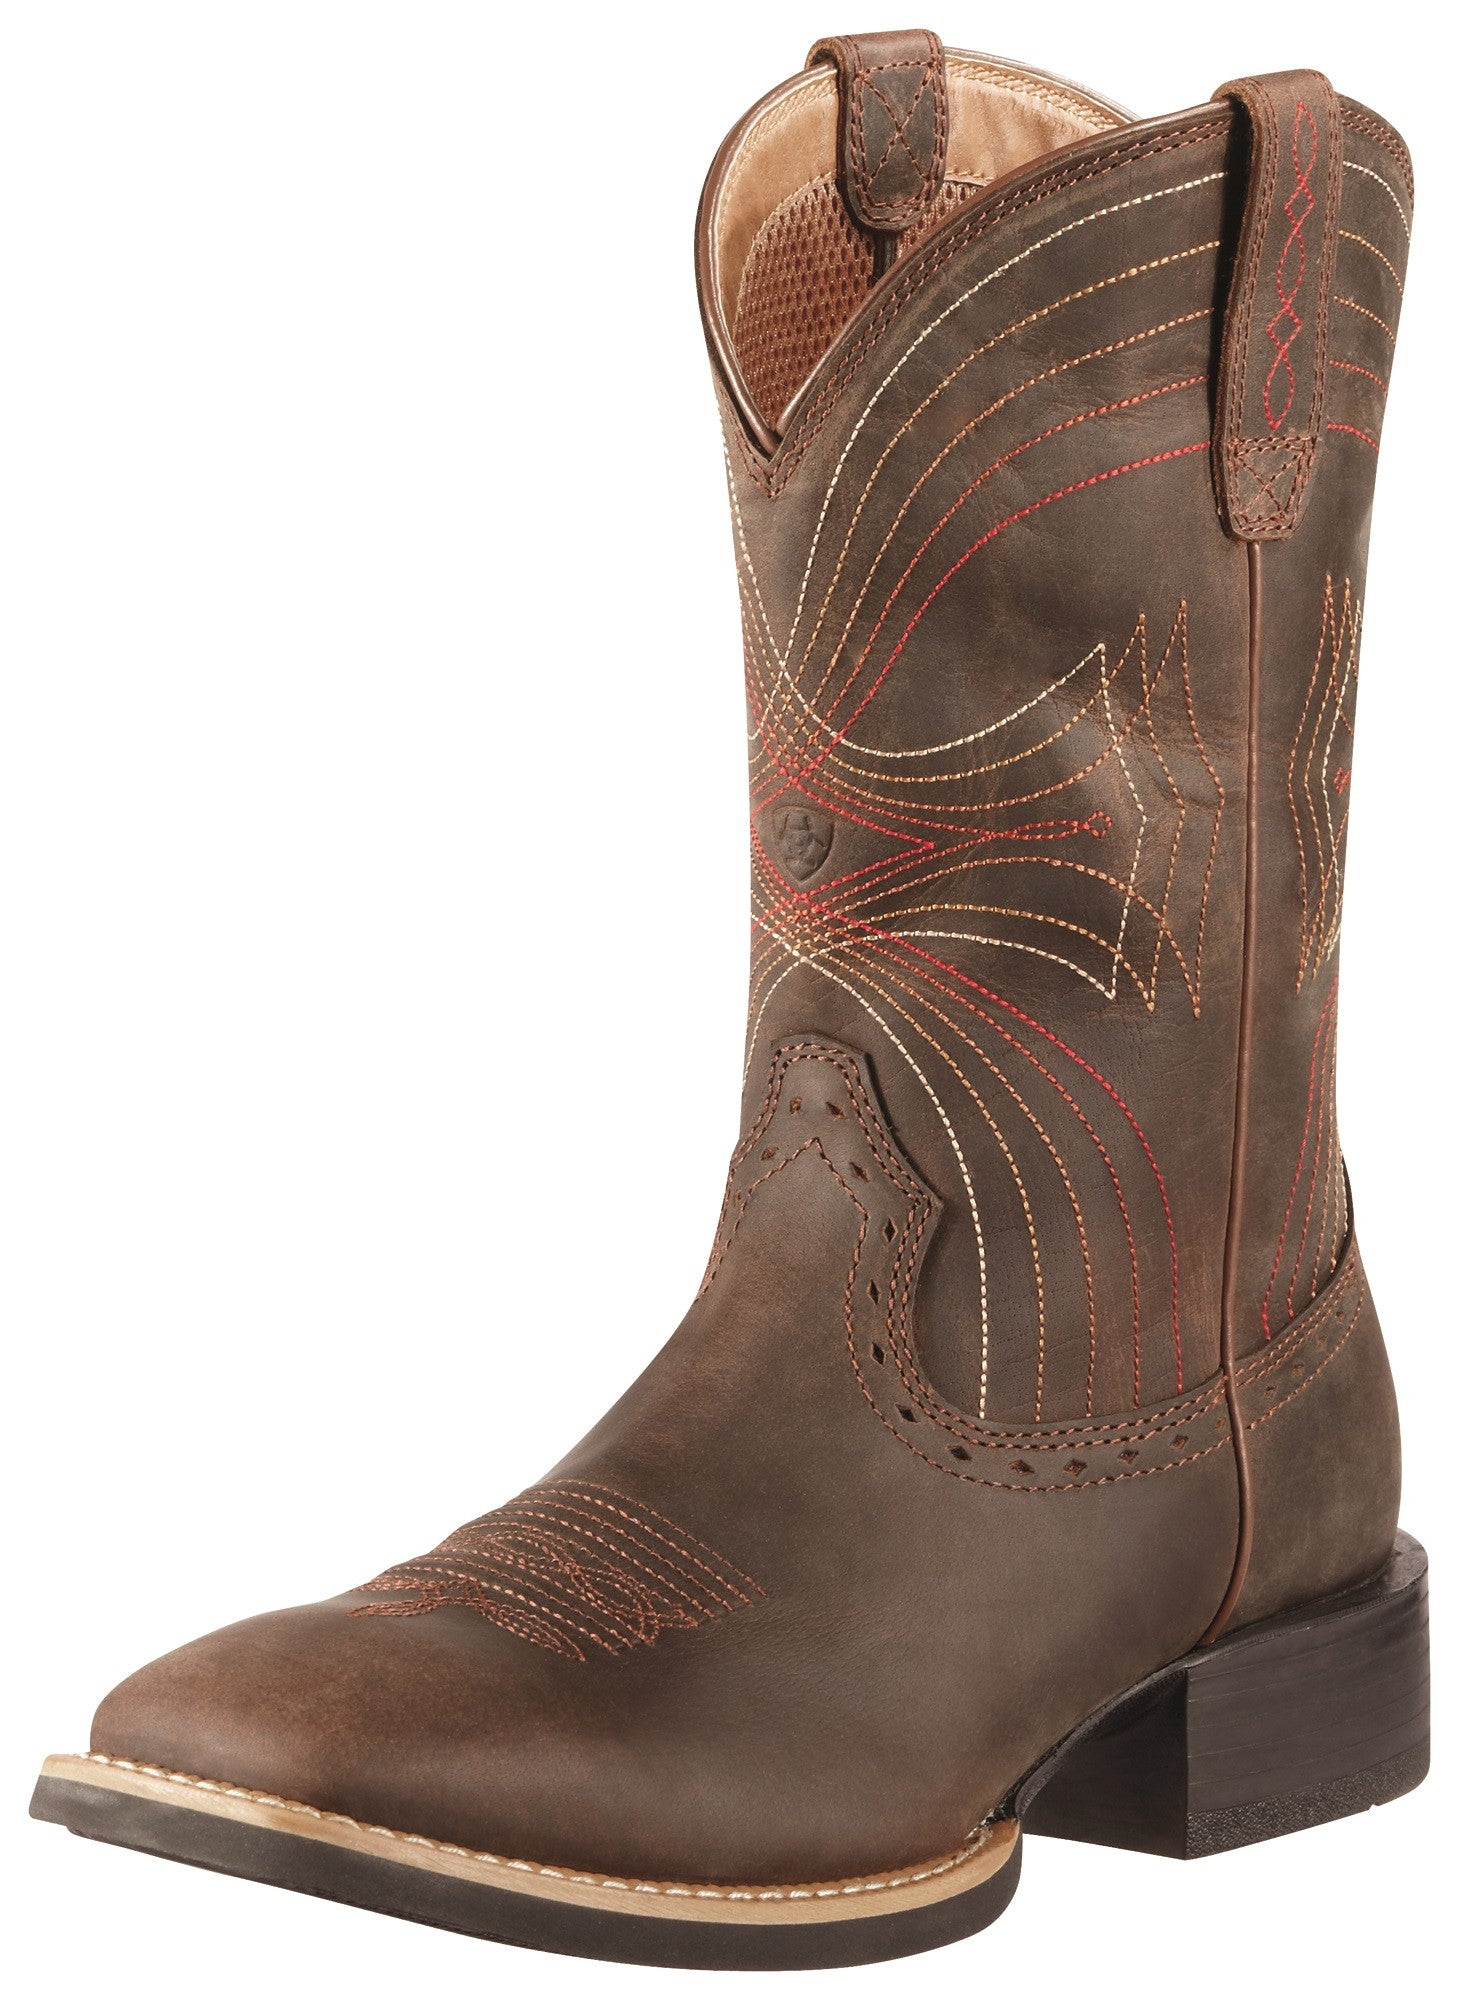 Men's Ariat Sport Western Boot #10010963